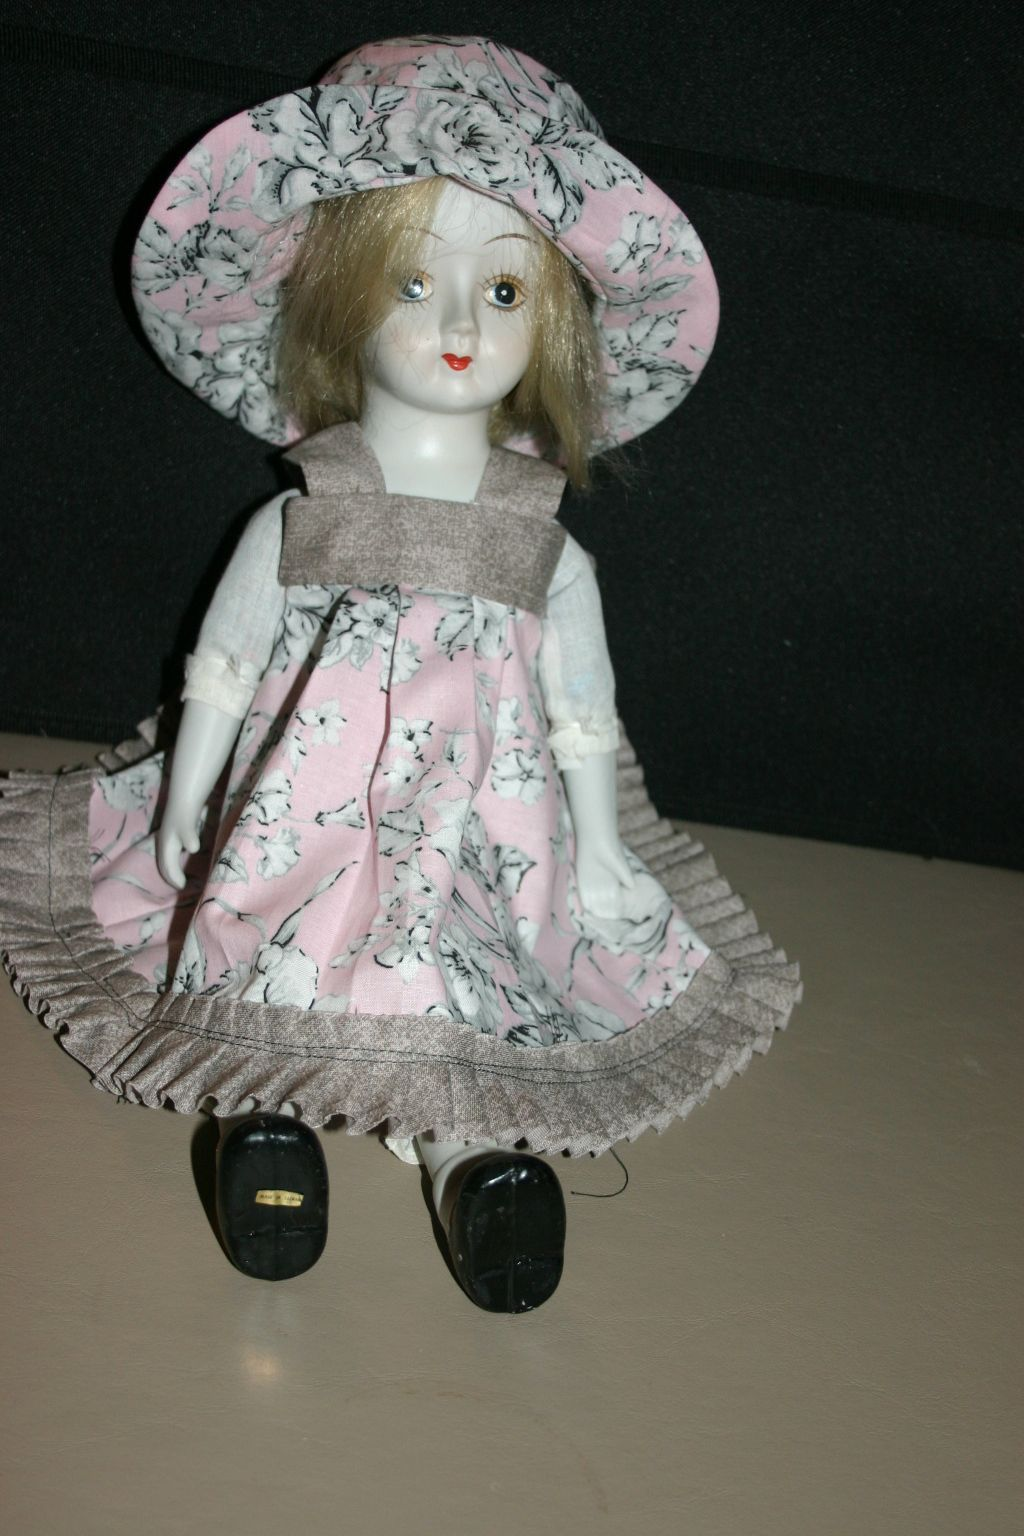 A dress I made for American Girl Doll